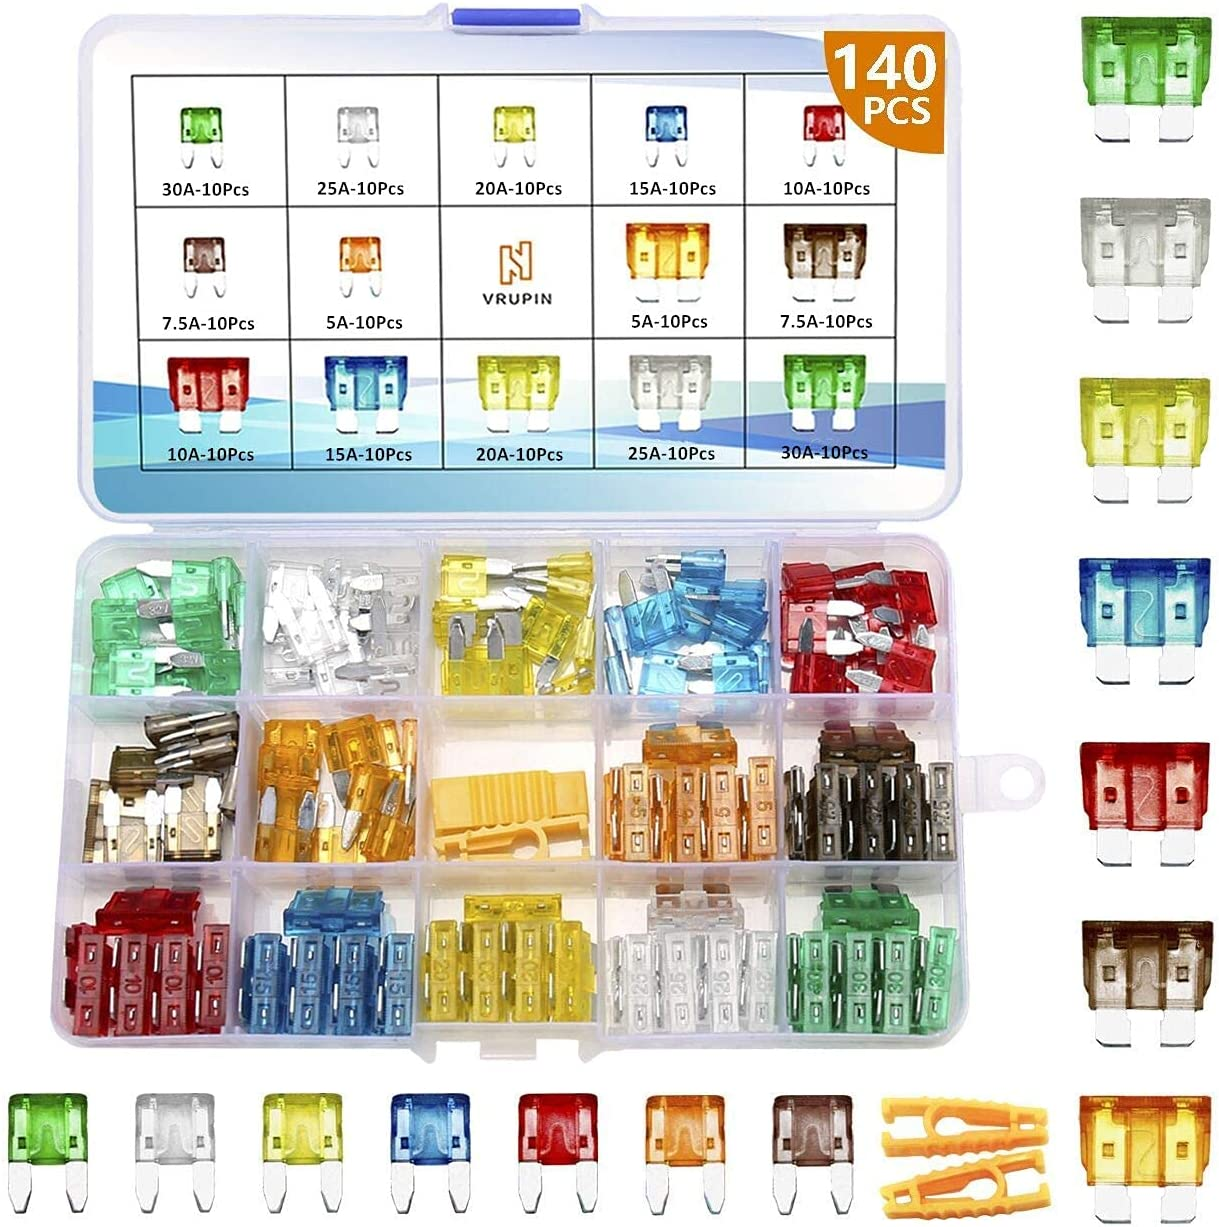 Vrupin 140Pcs -Car Fuses Assortment Kit,Car Fuse Kit, Blade-Type Automotive Fuses -Standard and Mini(5A/7.5A/10A/15A/20A/25A/30A),Replacement Fuses for Car/SUV/RV/Truck/Motorcycle/Boat